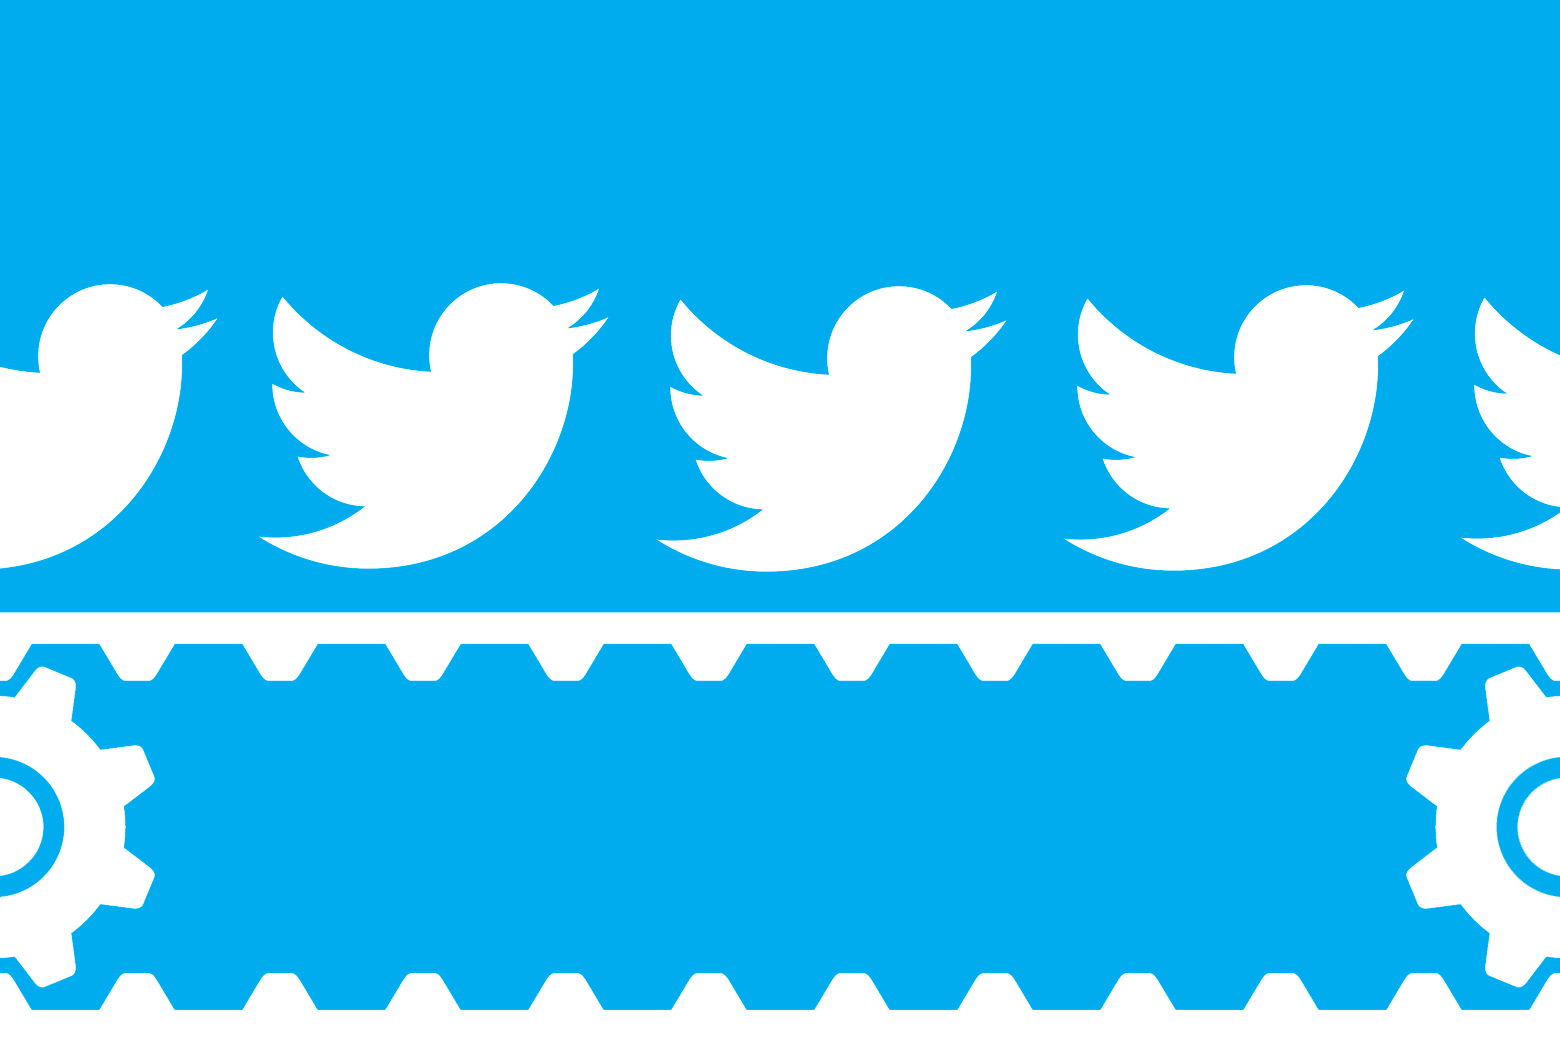 An illustration of Twitter birds on a conveyor belt.